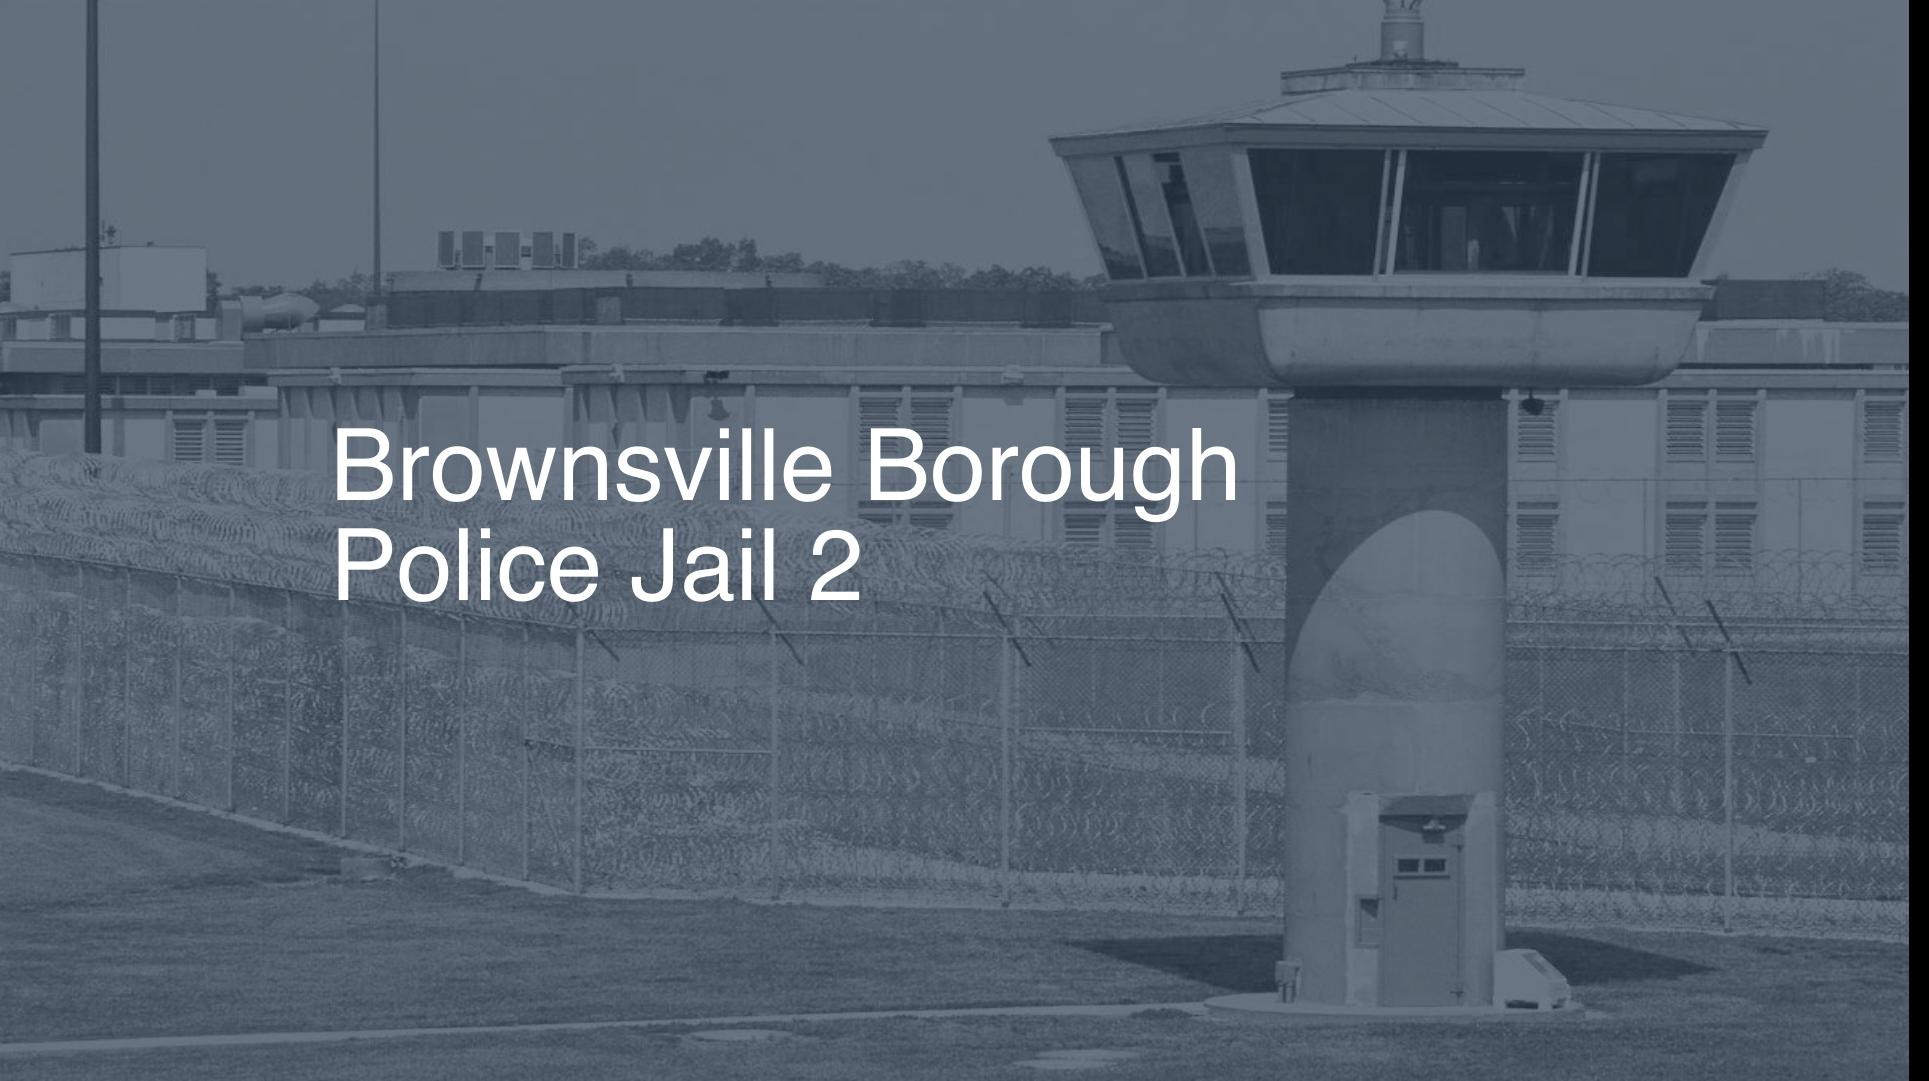 Brownsville Borough Police Jail correctional facility picture